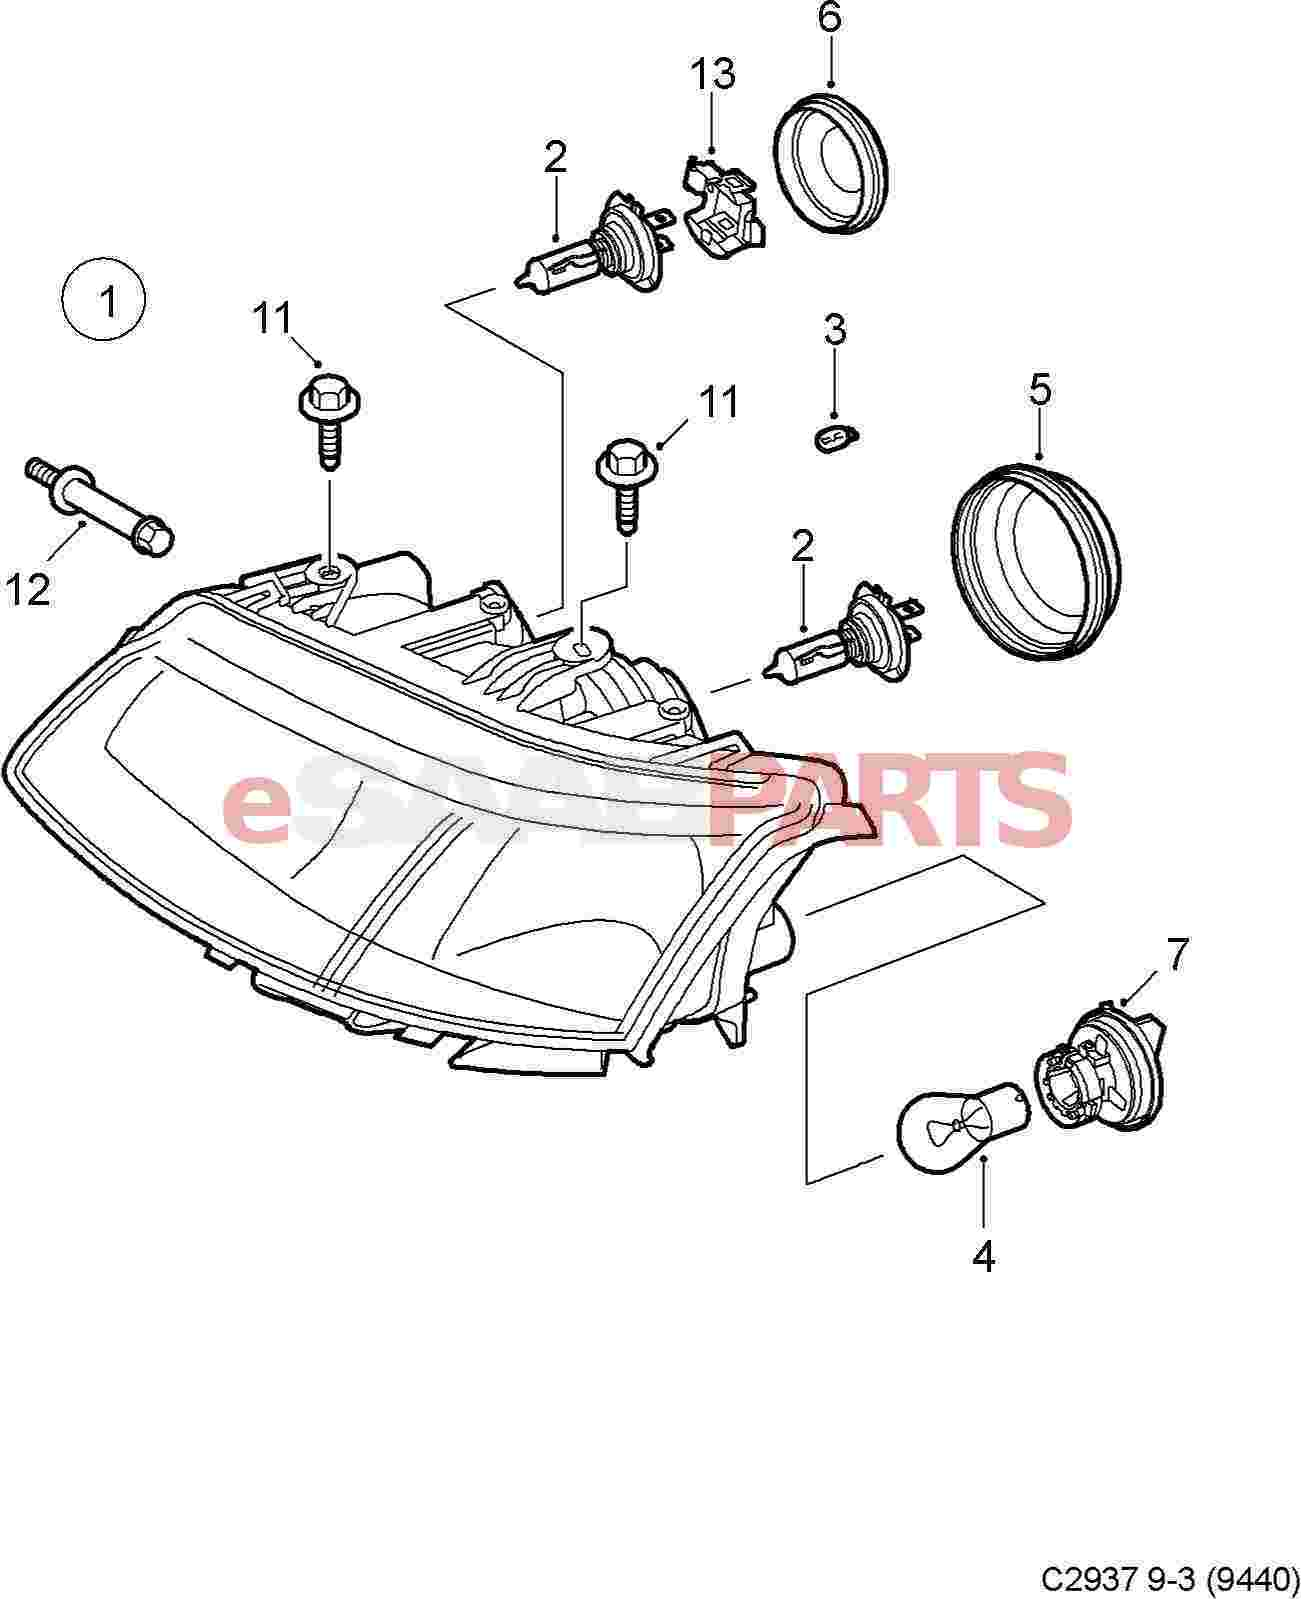 esaabparts com saab 9 3 9440 u003e electrical parts u003e headlights rh esaabparts com Saab Headlight Replacement Saab Headlights Not Working